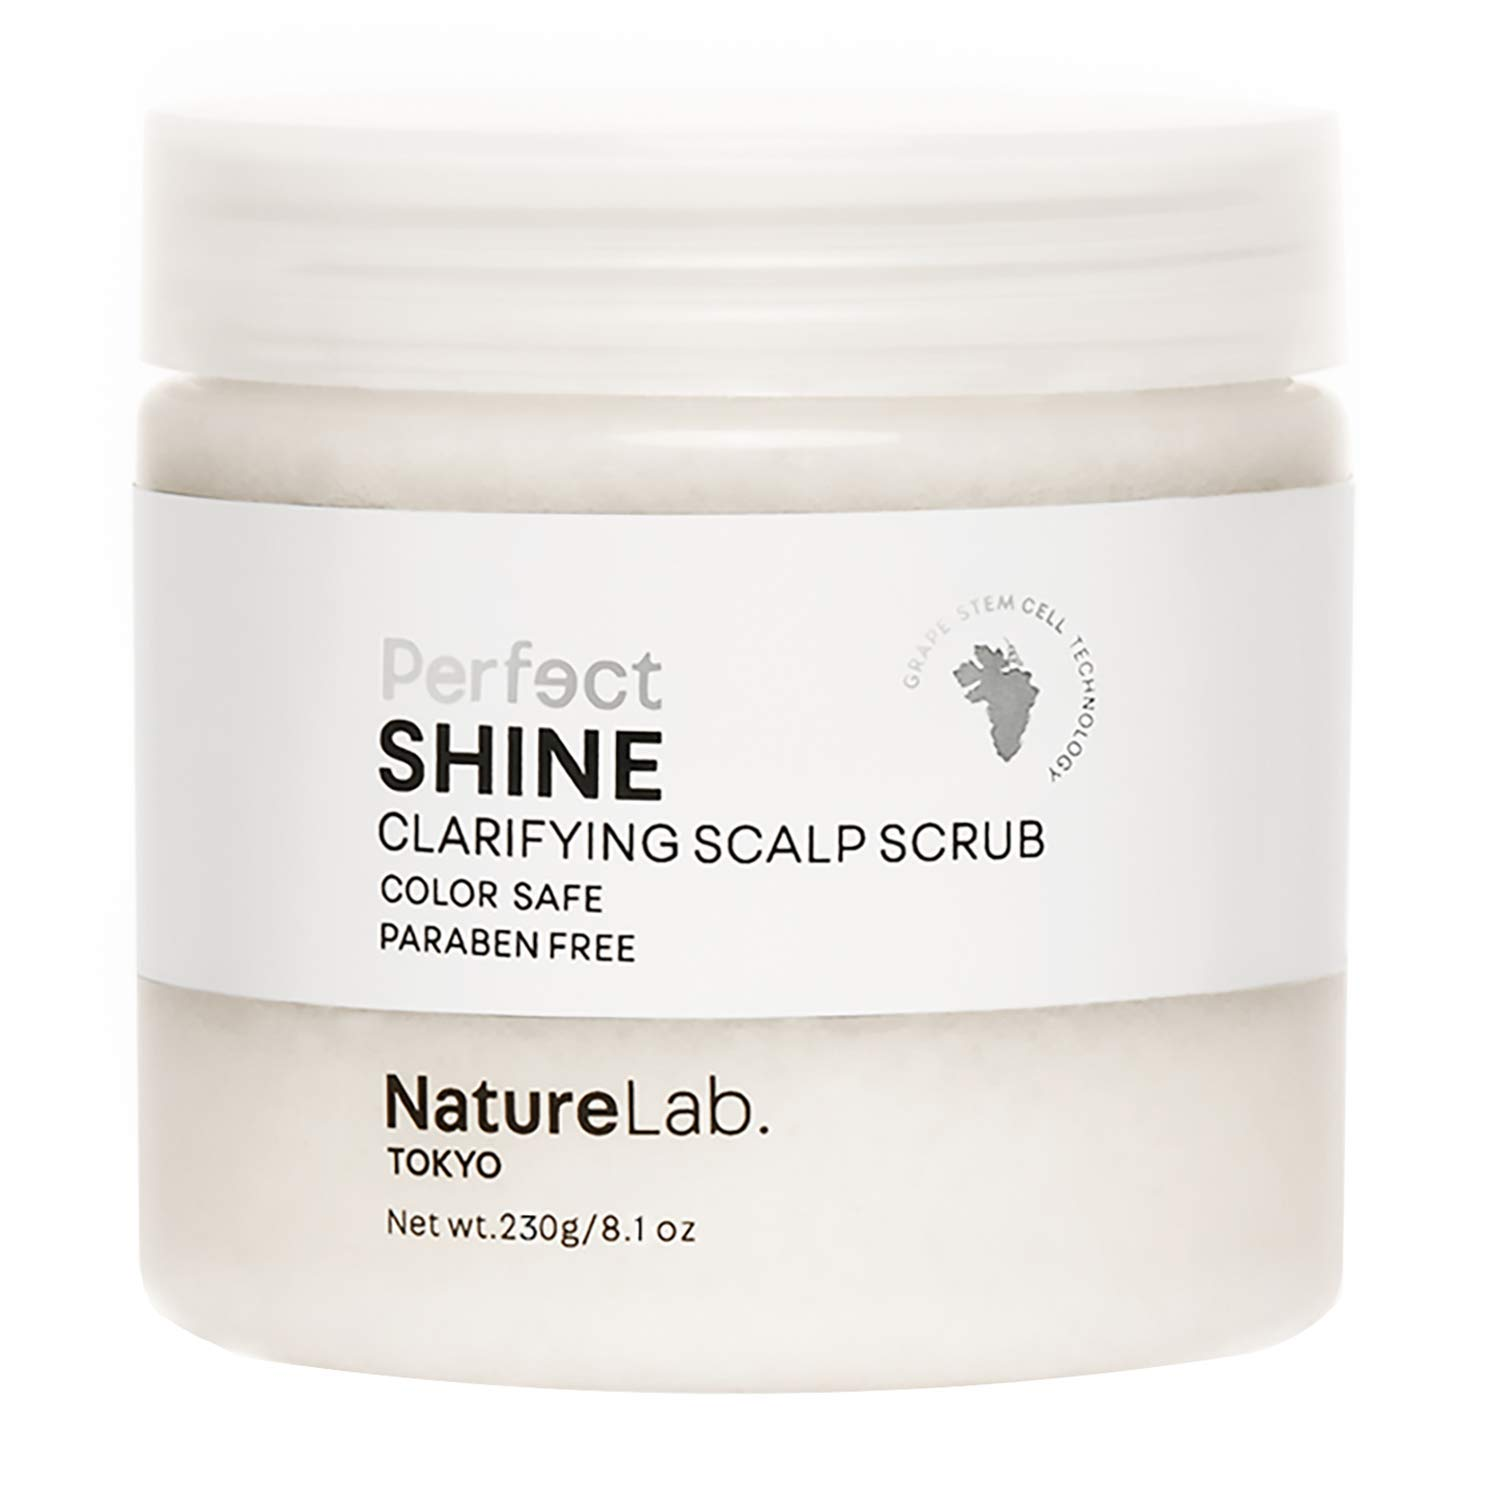 Scalp scrub by nature lab as one of the best tips for healthy hair